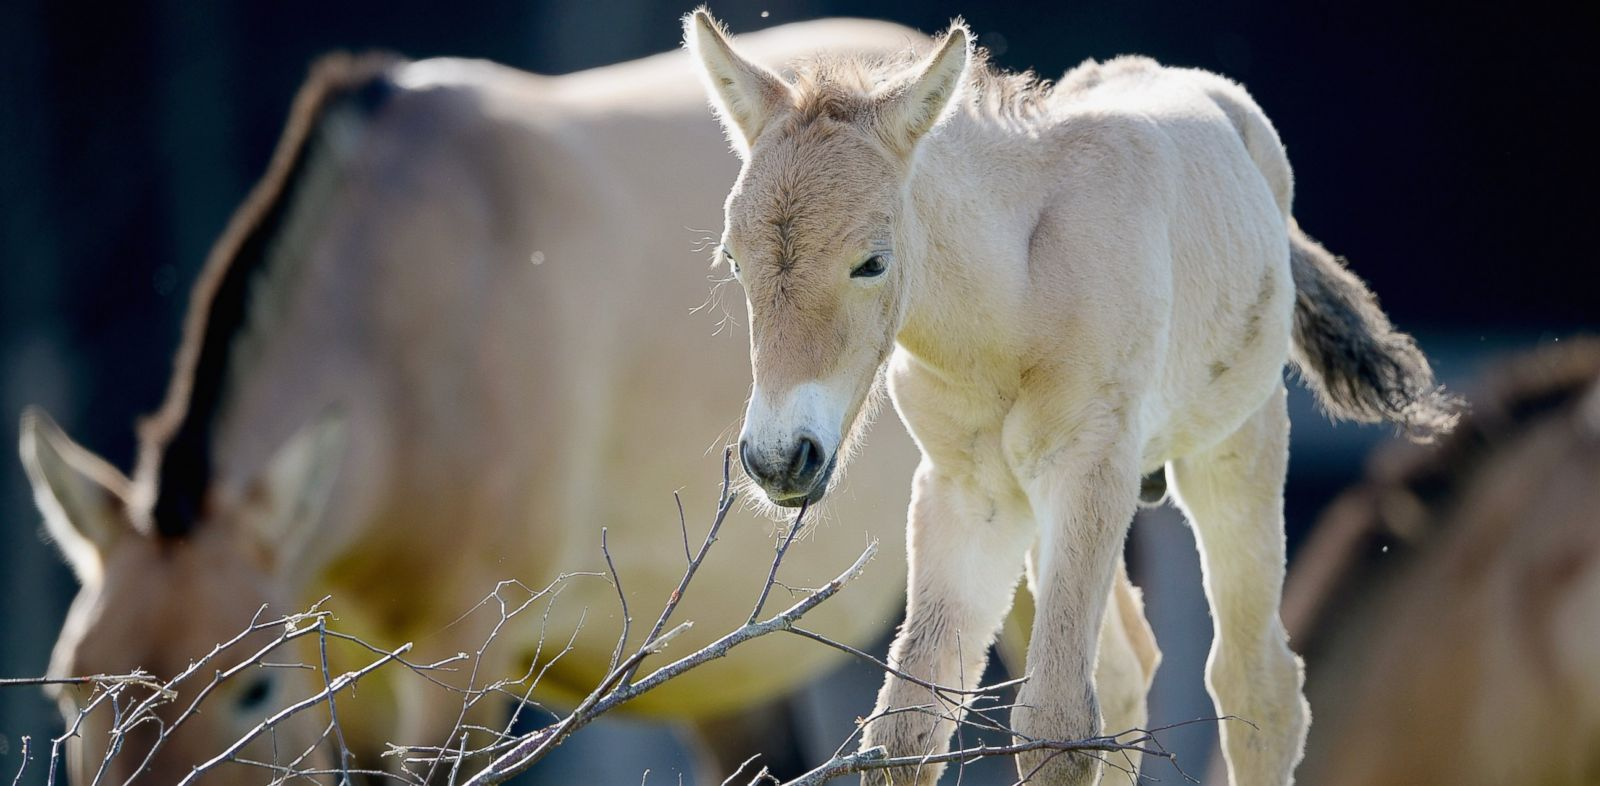 PHOTO: A Przewalskis colt foal is shown at the Highland Wildlife Park in Kingussie, Scotland, in this Sept. 9, 2013 photo.